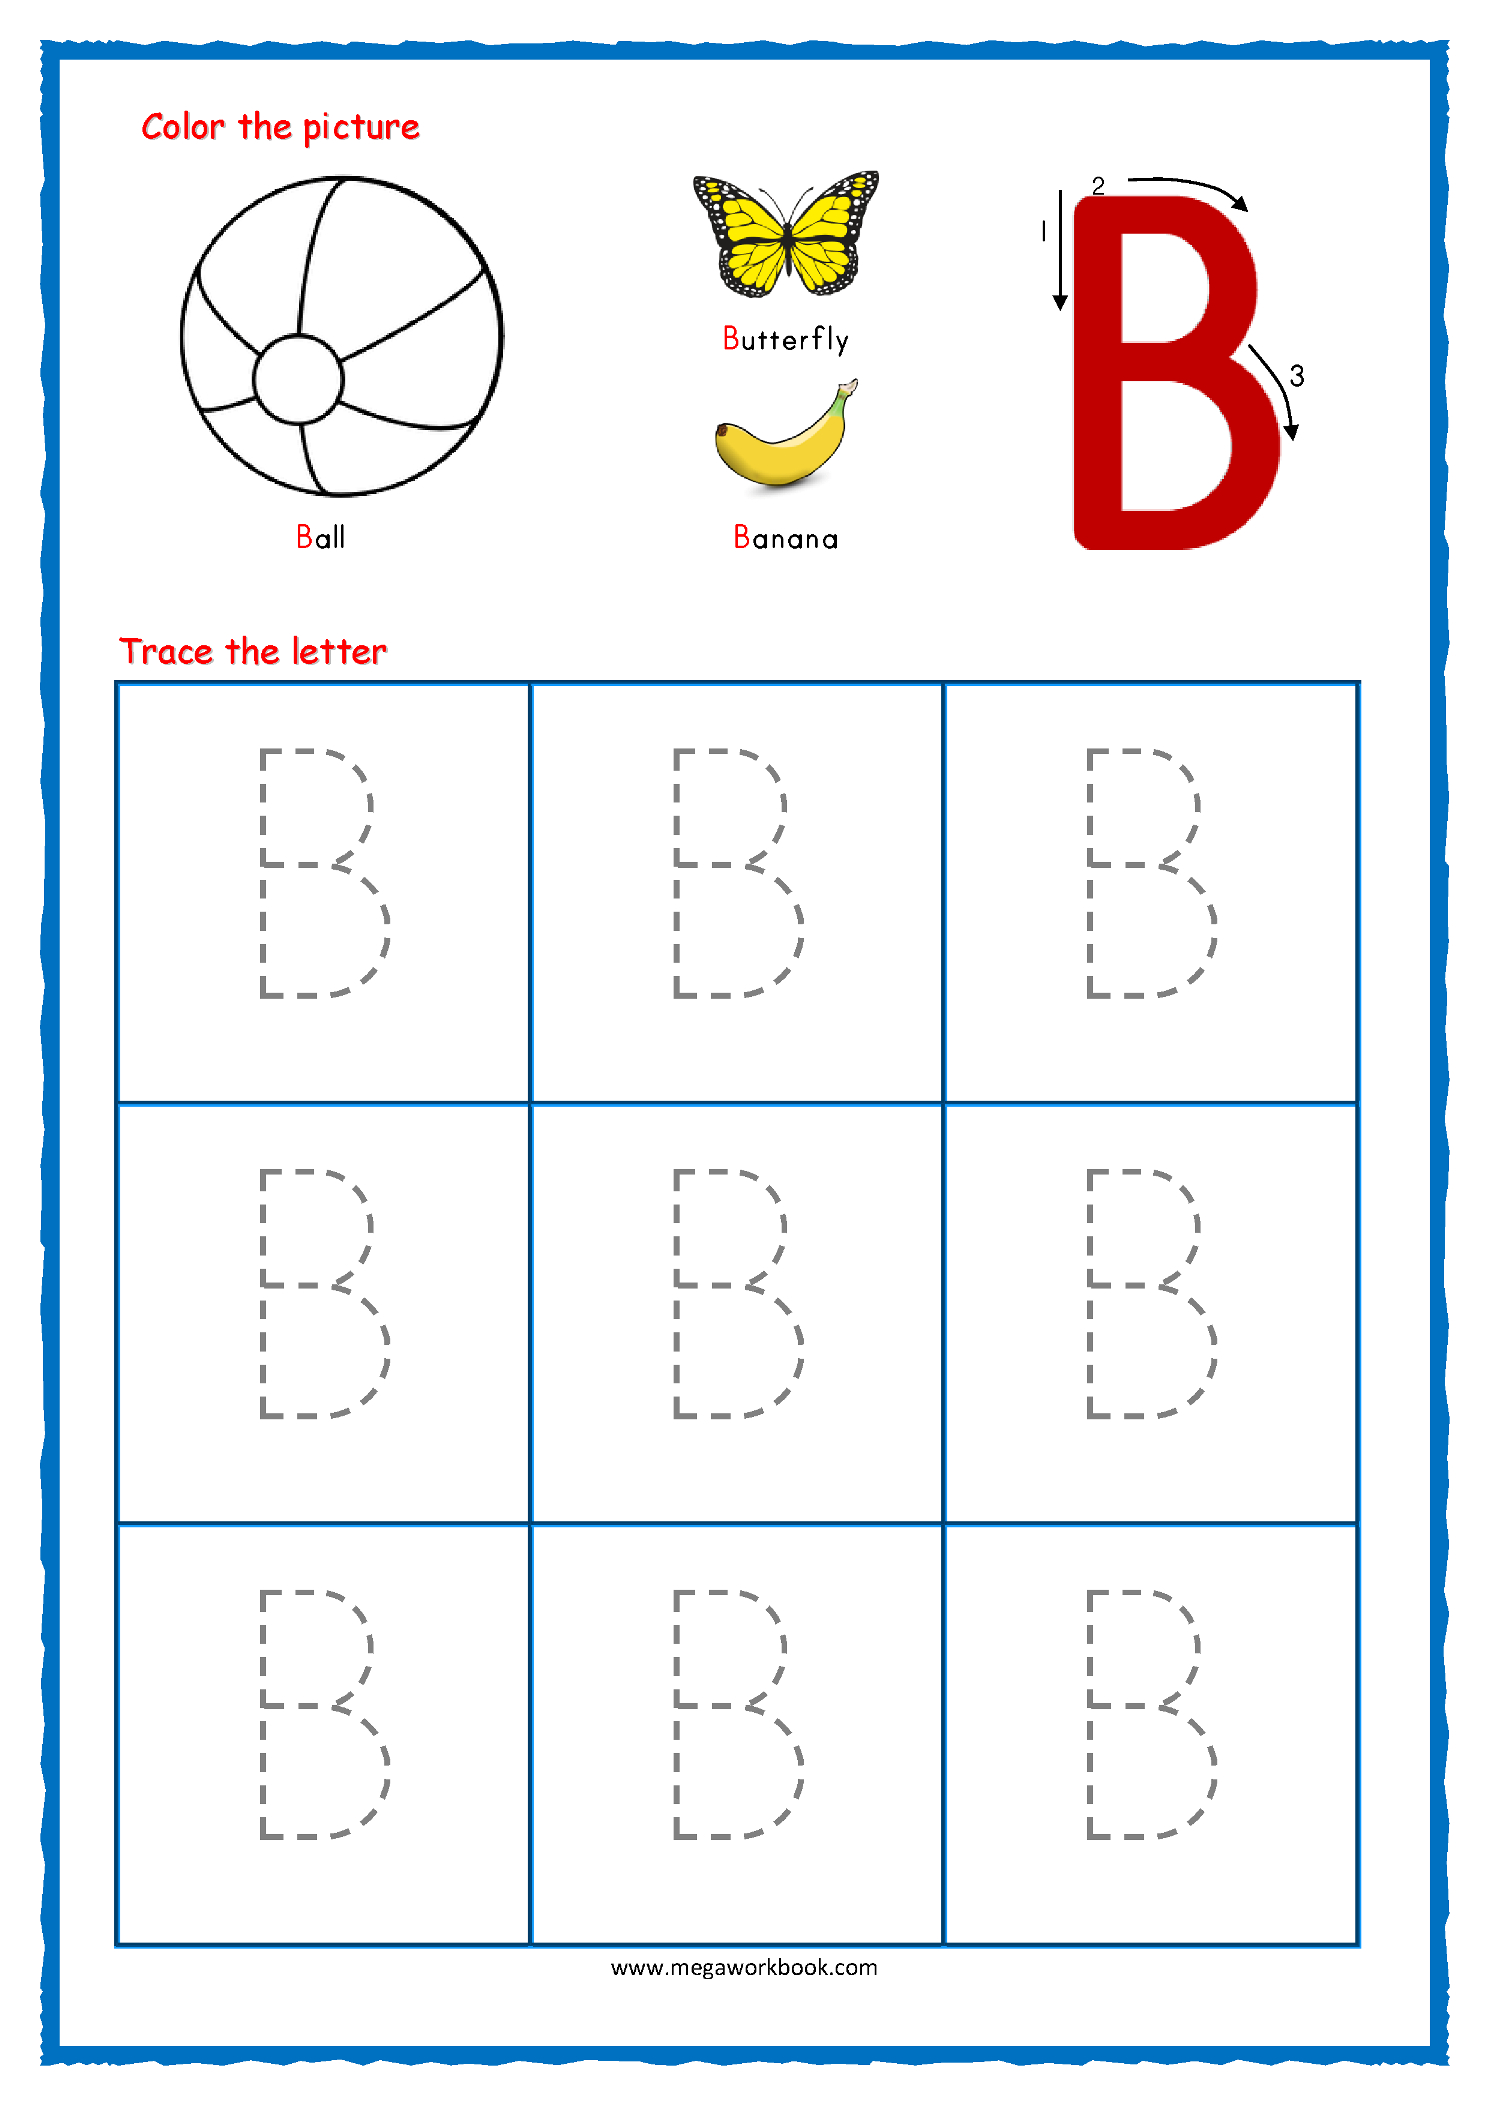 Tracing Letters - Alphabet Tracing - Capital Letters with Free Tracing Letters A-Z Worksheets